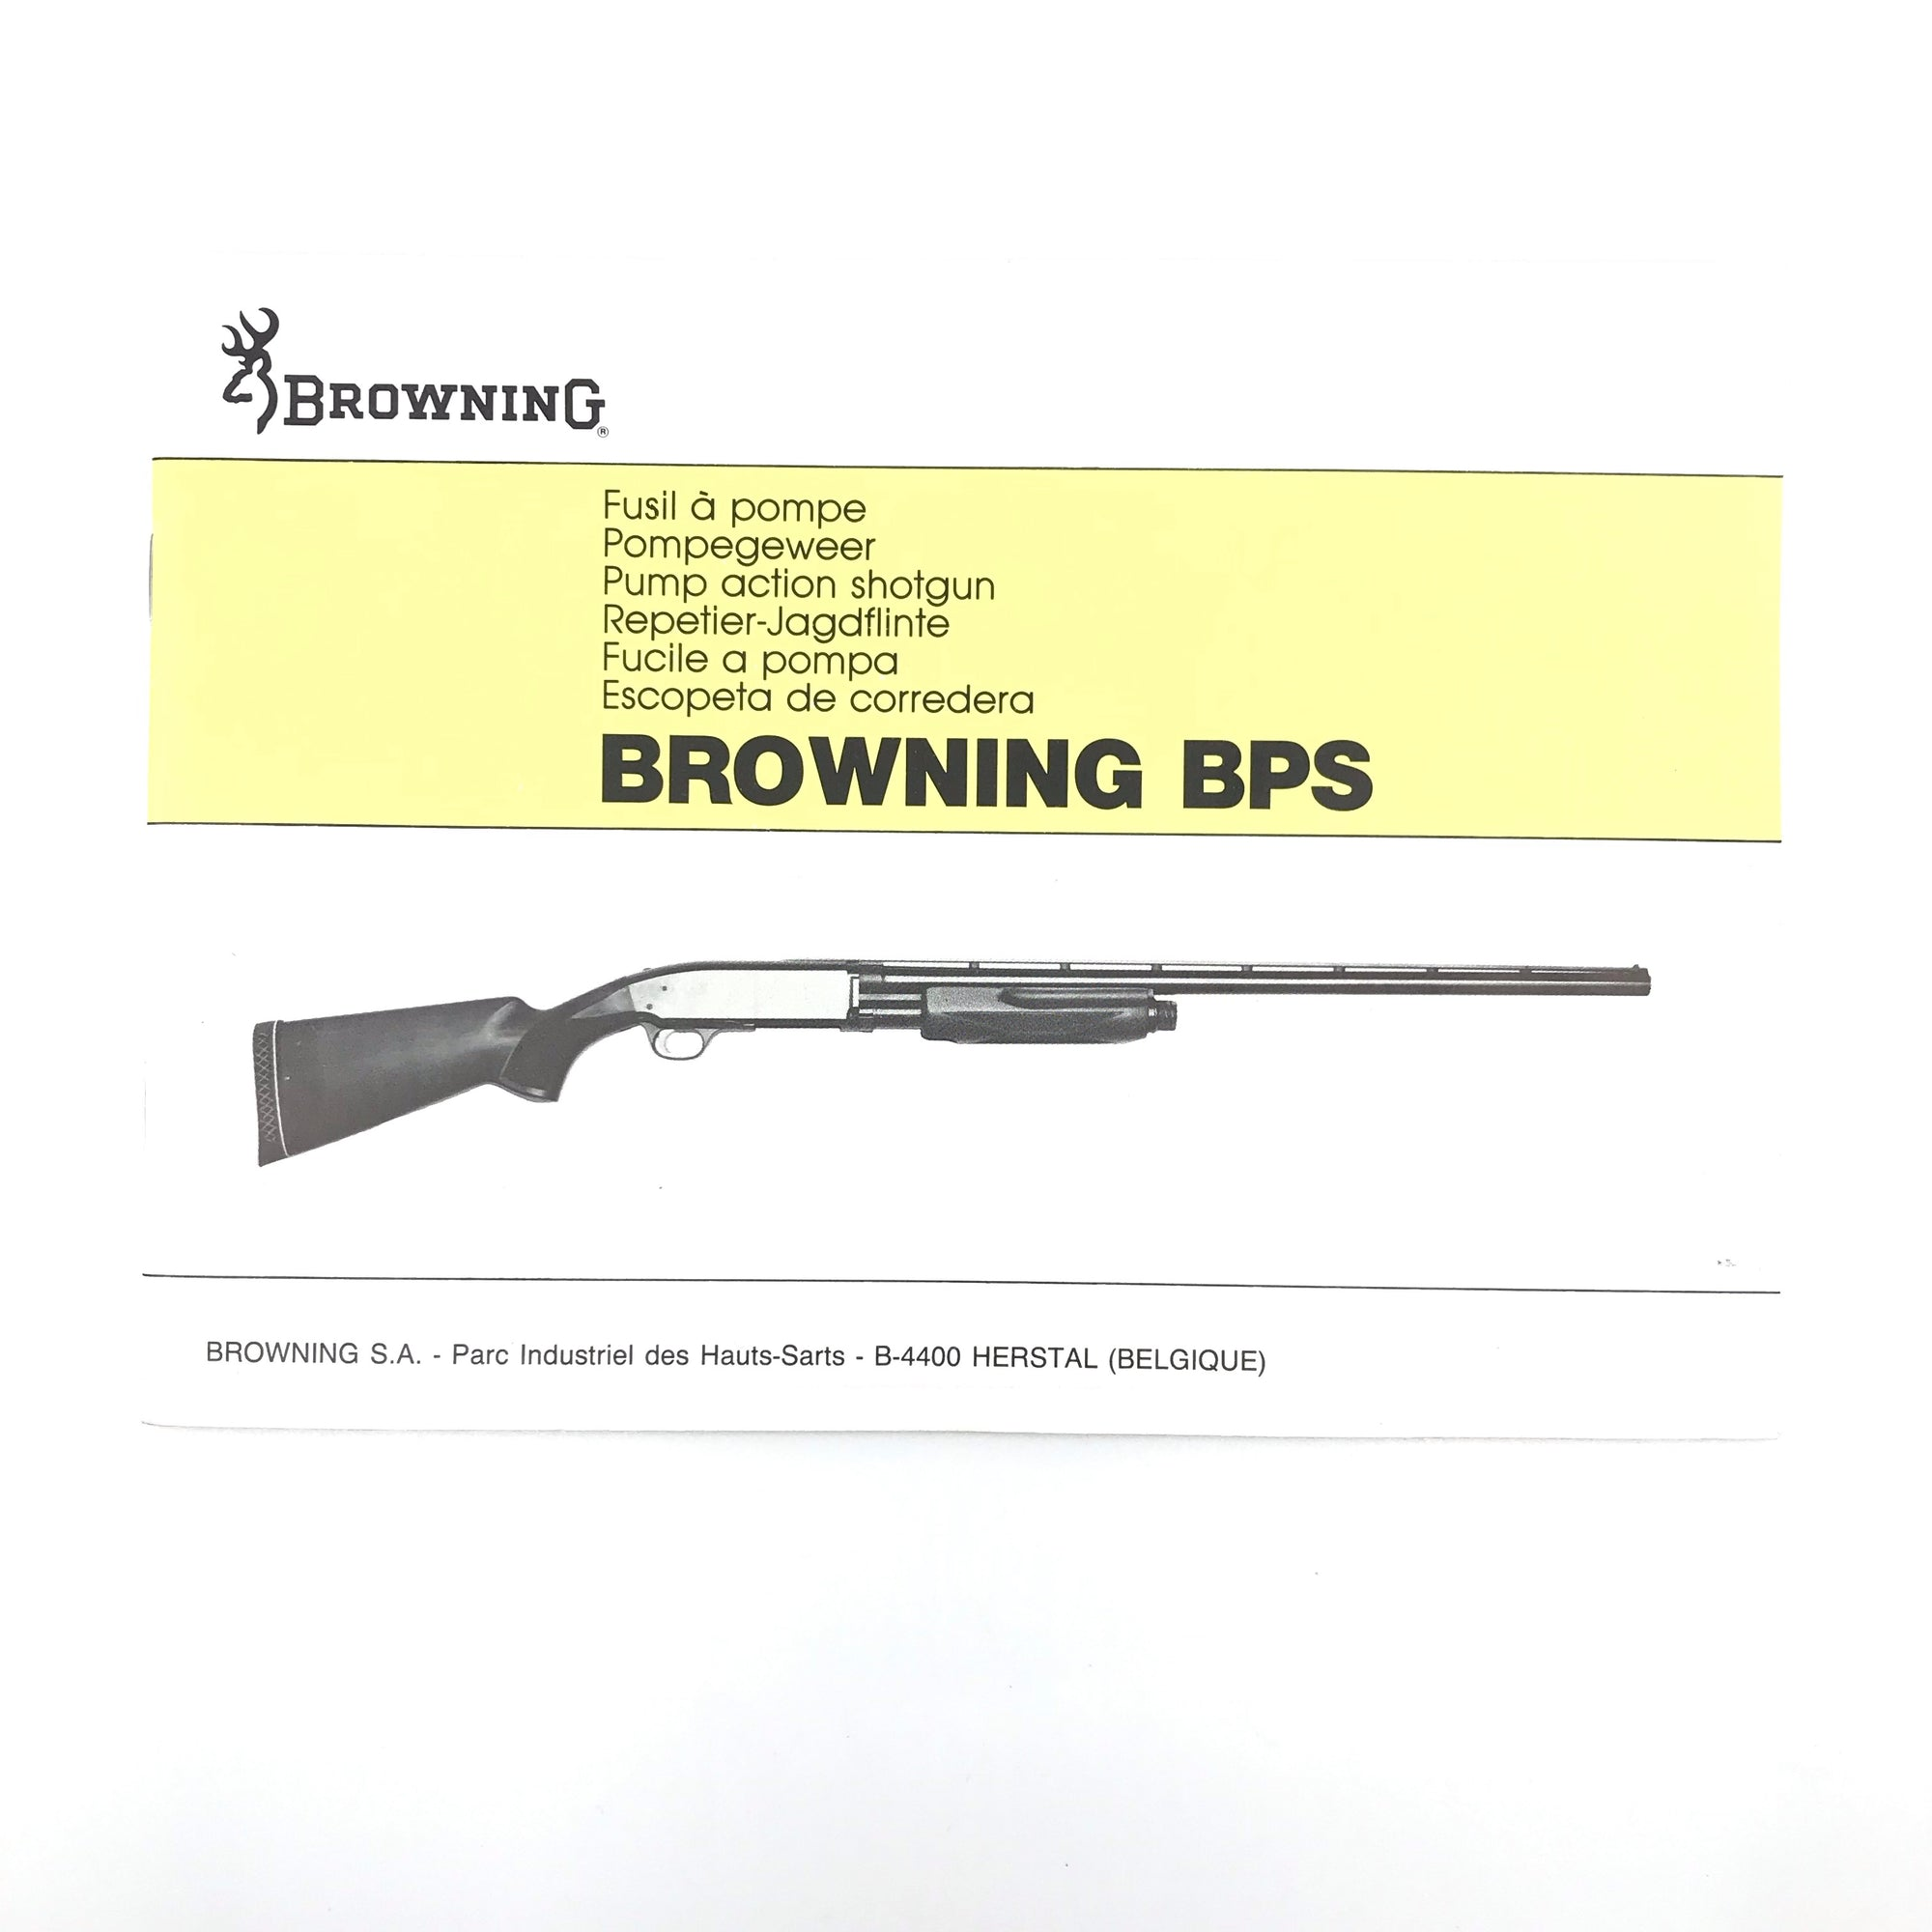 Browning BPS Pump Action Shotgun Pamphlet